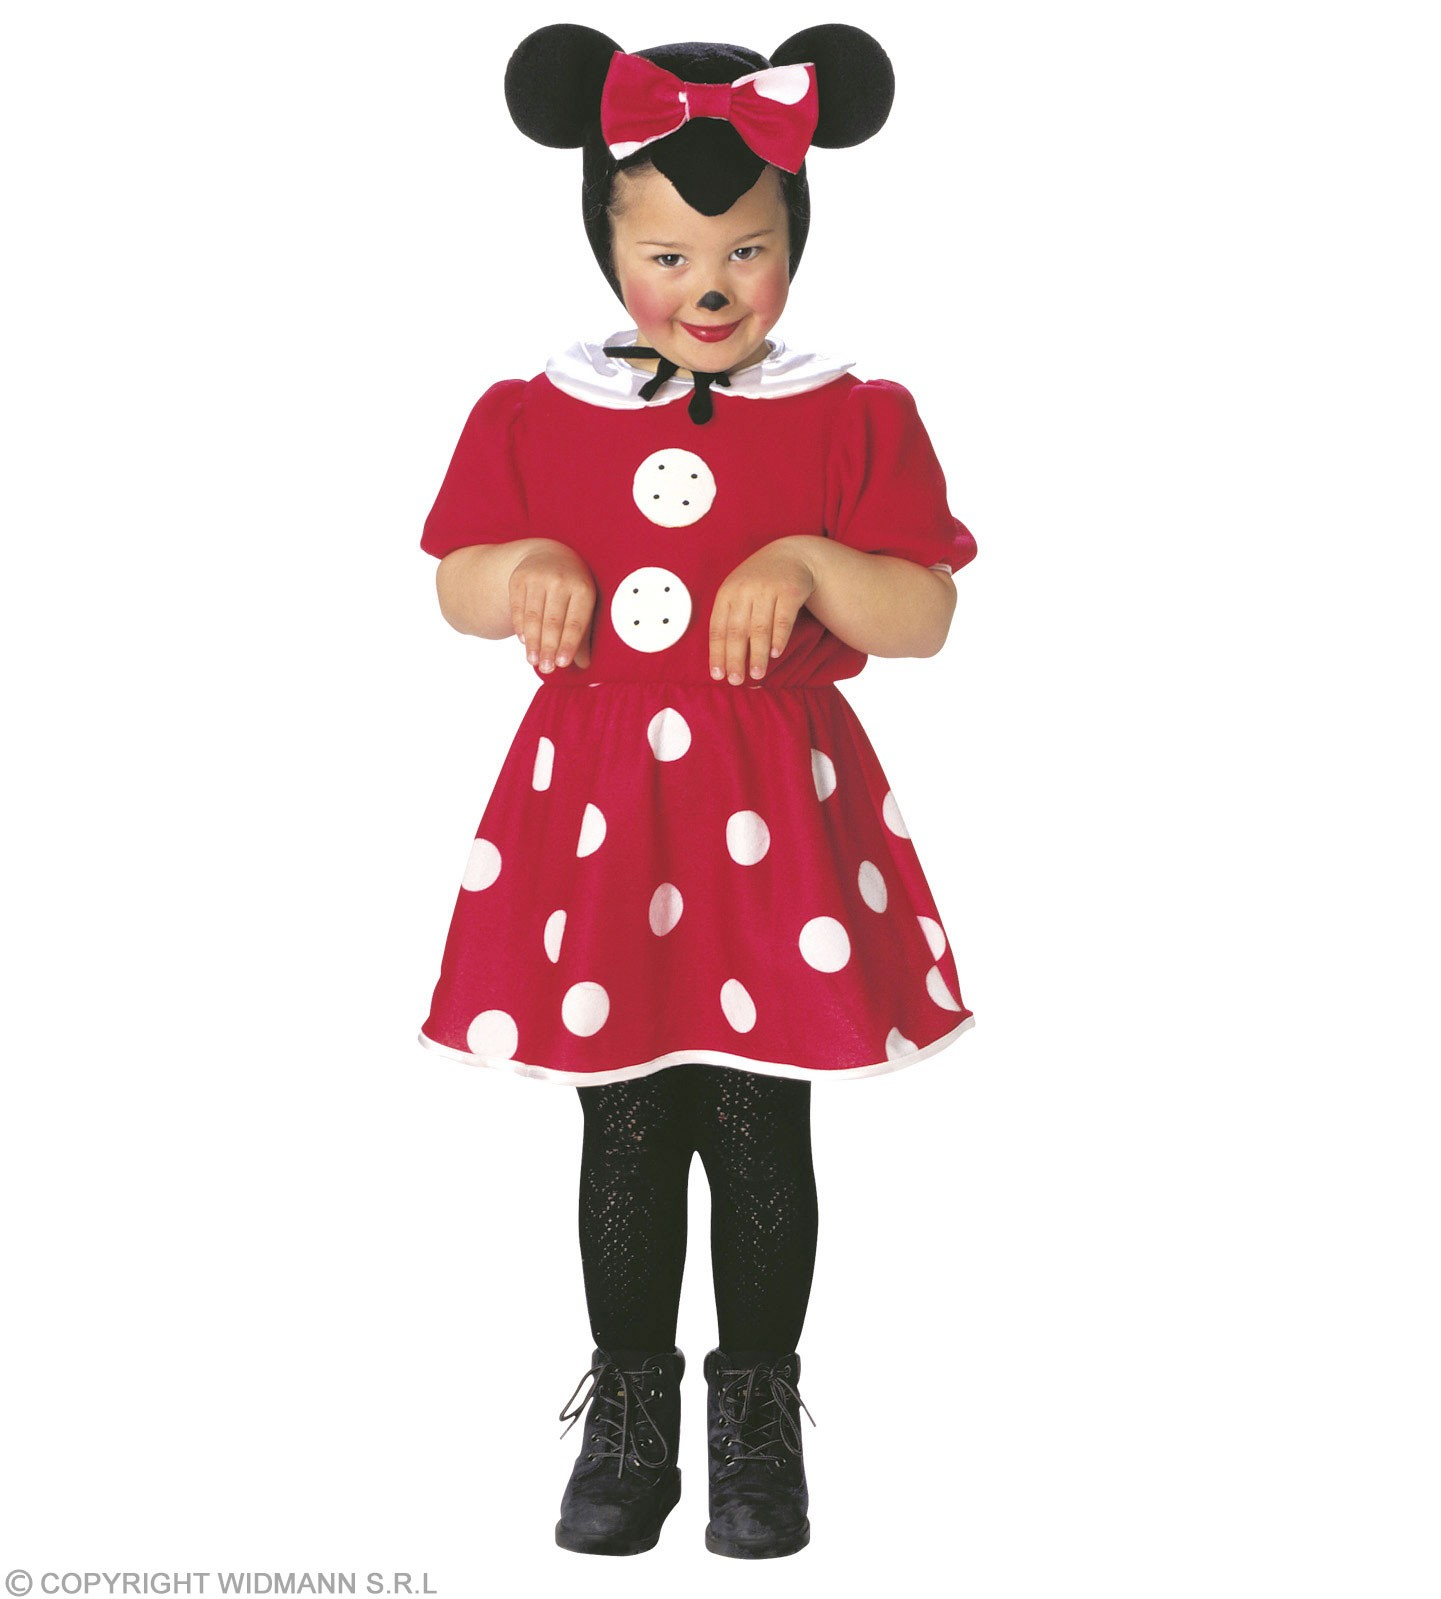 Mouse & Dress & Headpiece, Soft & Cute Costume Age 2-3